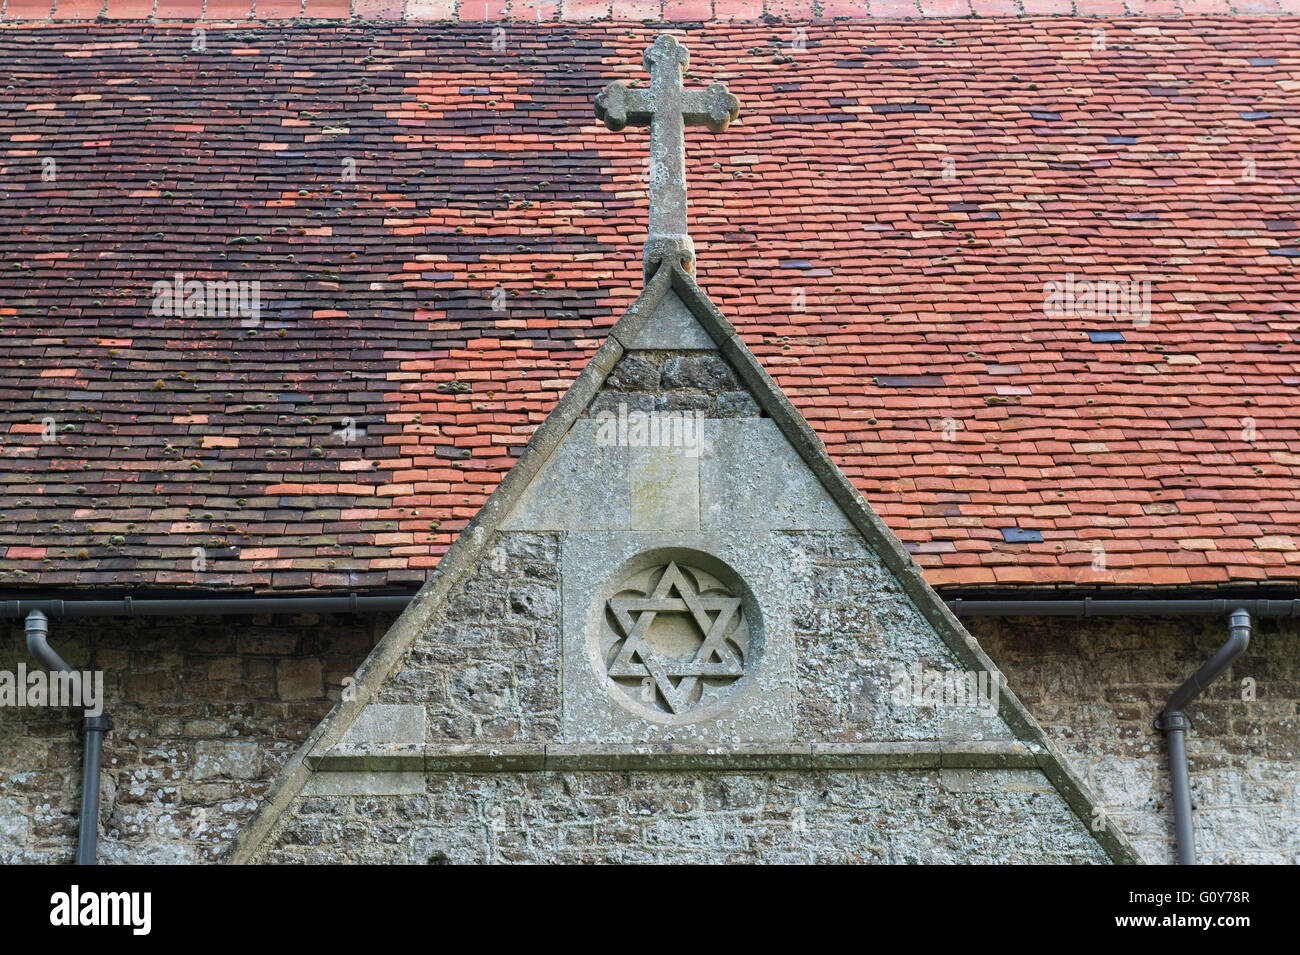 St Peters church porch stone star and cross detail, Little Wittenham, South Oxfordshire, England - Stock Image